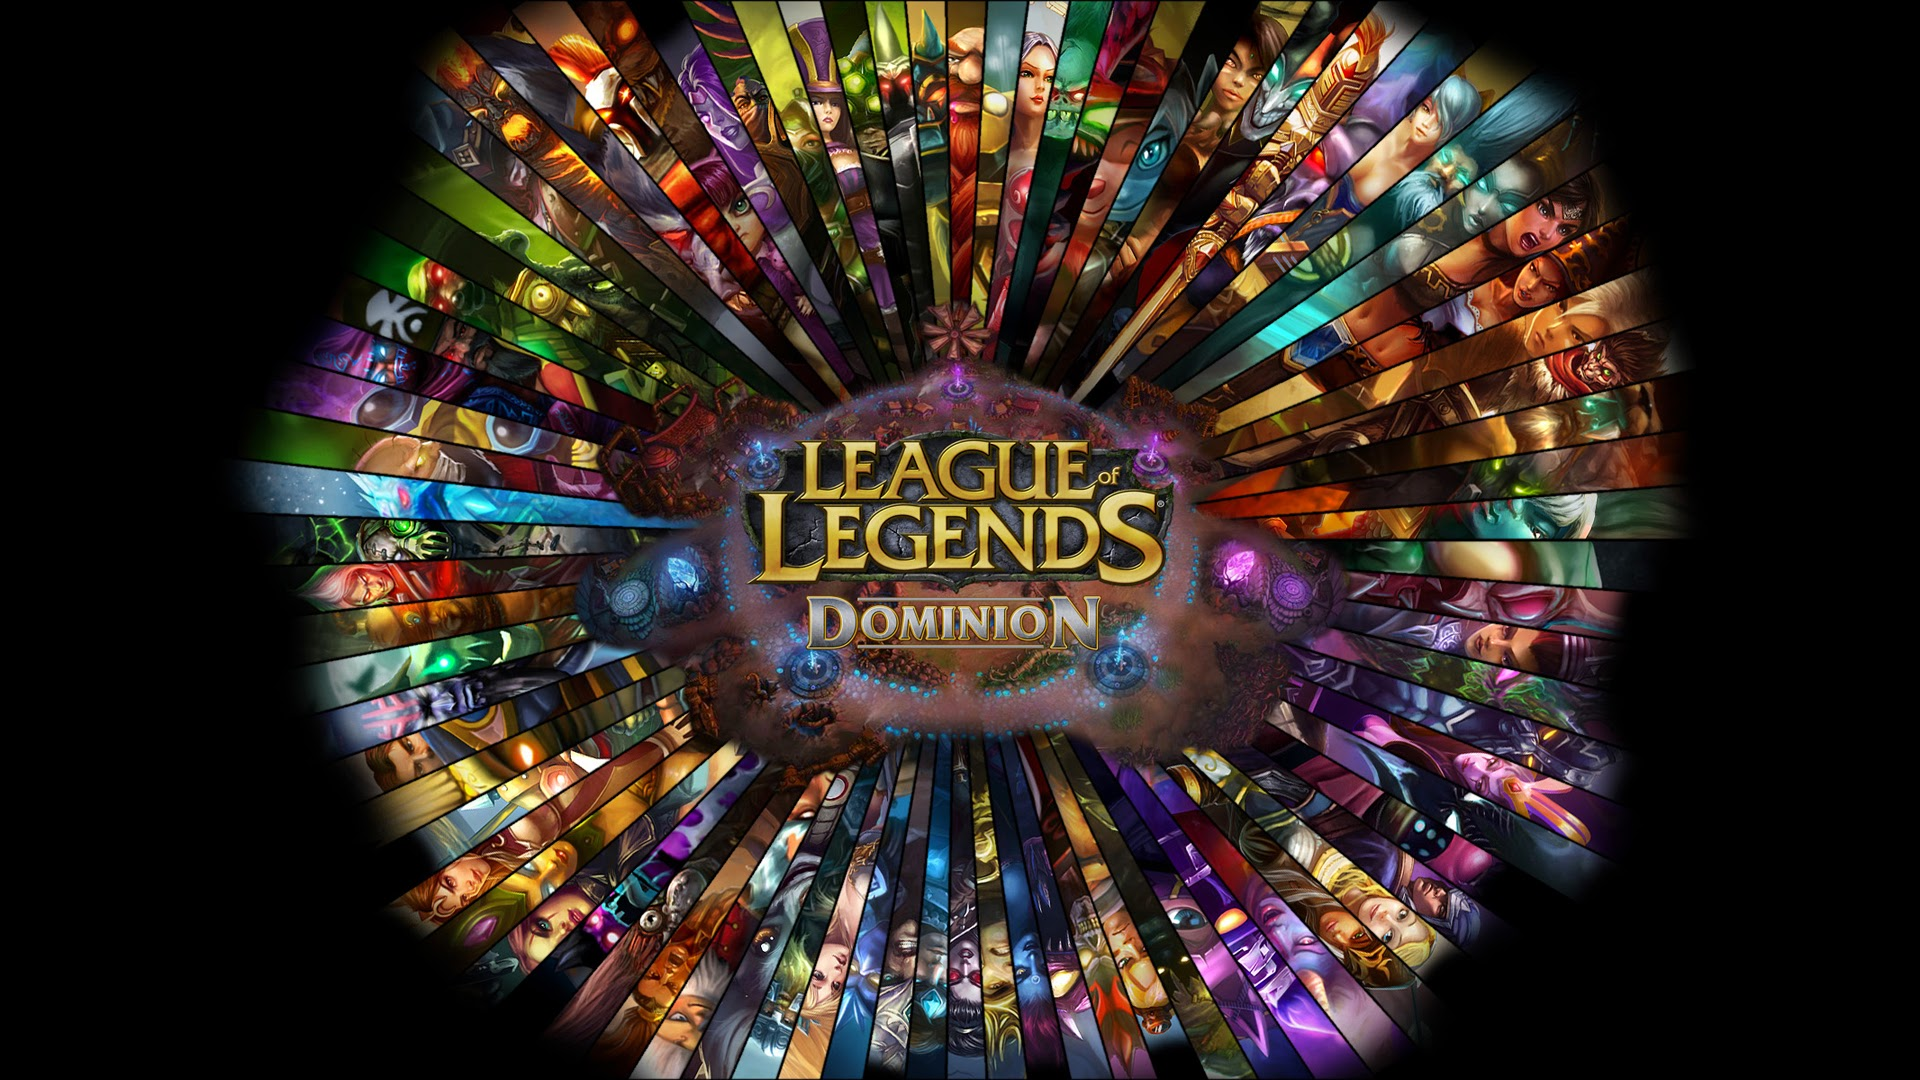 League of legends wallpaper pack - League Of Legends Dominion Hd Wallpaper Lol Champion 1920x1080 3w